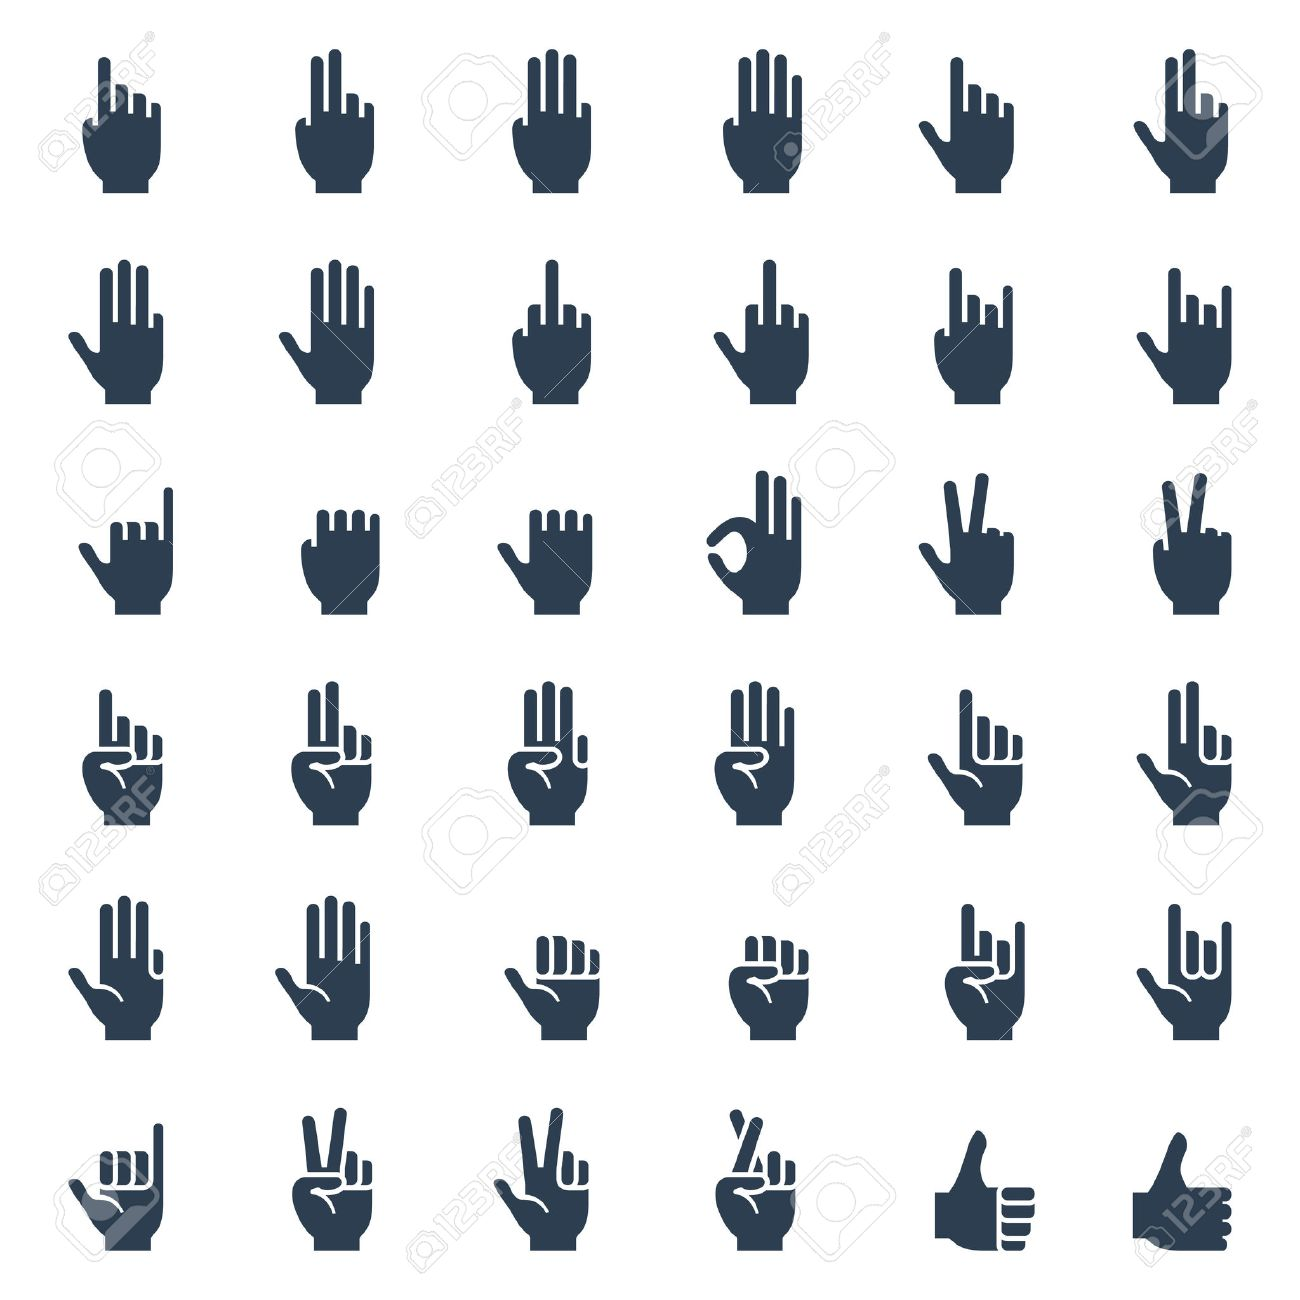 3091 middle finger cliparts stock vector and royalty free middle human hand gestures signals and signs body language icon set biocorpaavc Gallery